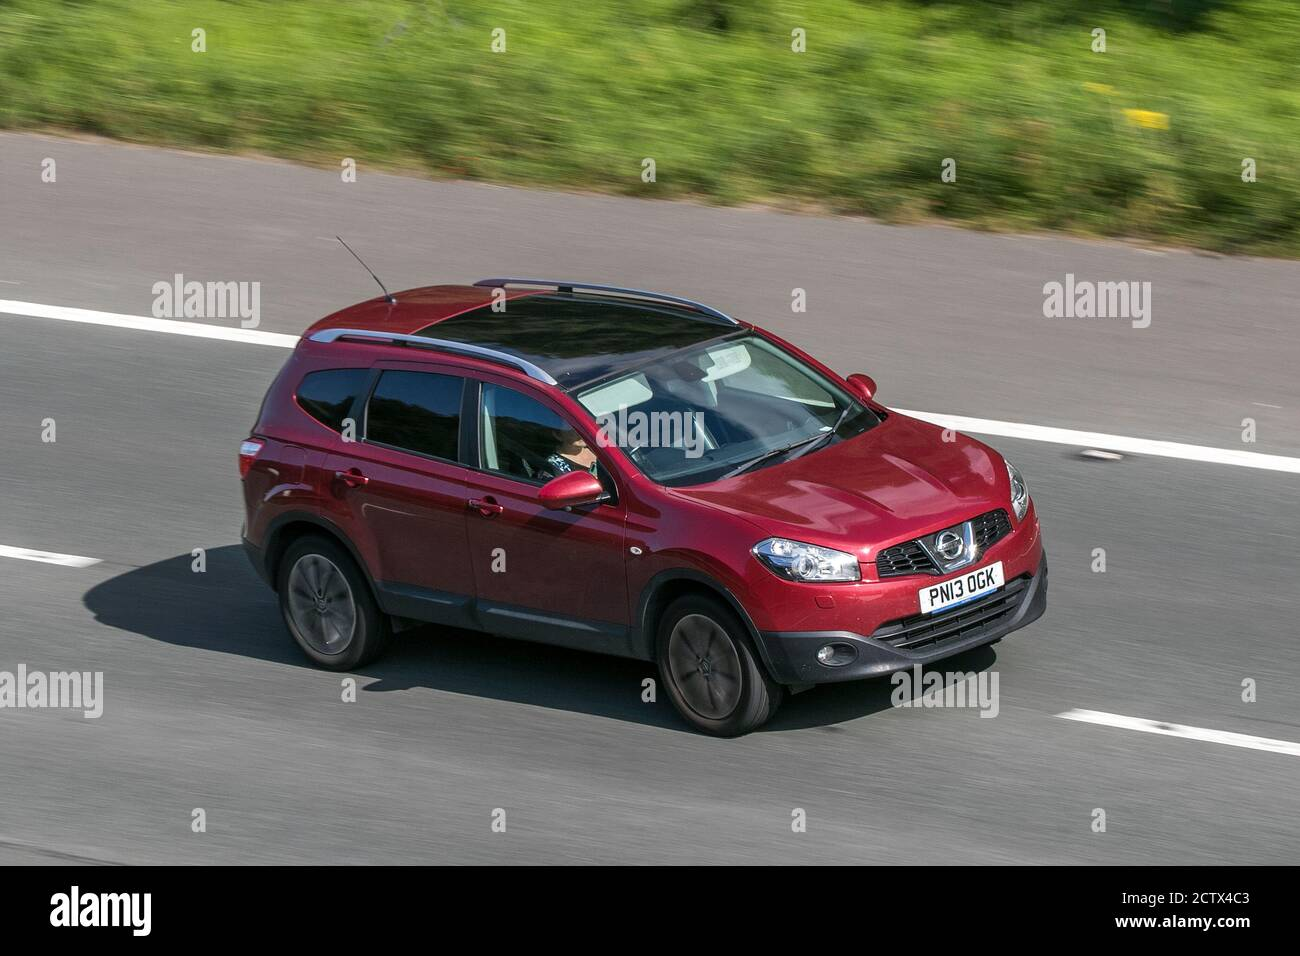 2013 Nissan Qashqai Tekna 2 Dci Red Car Suv Diesel Driving On The M6 Motorway Near Preston In Lancashire Uk Stock Photo Alamy